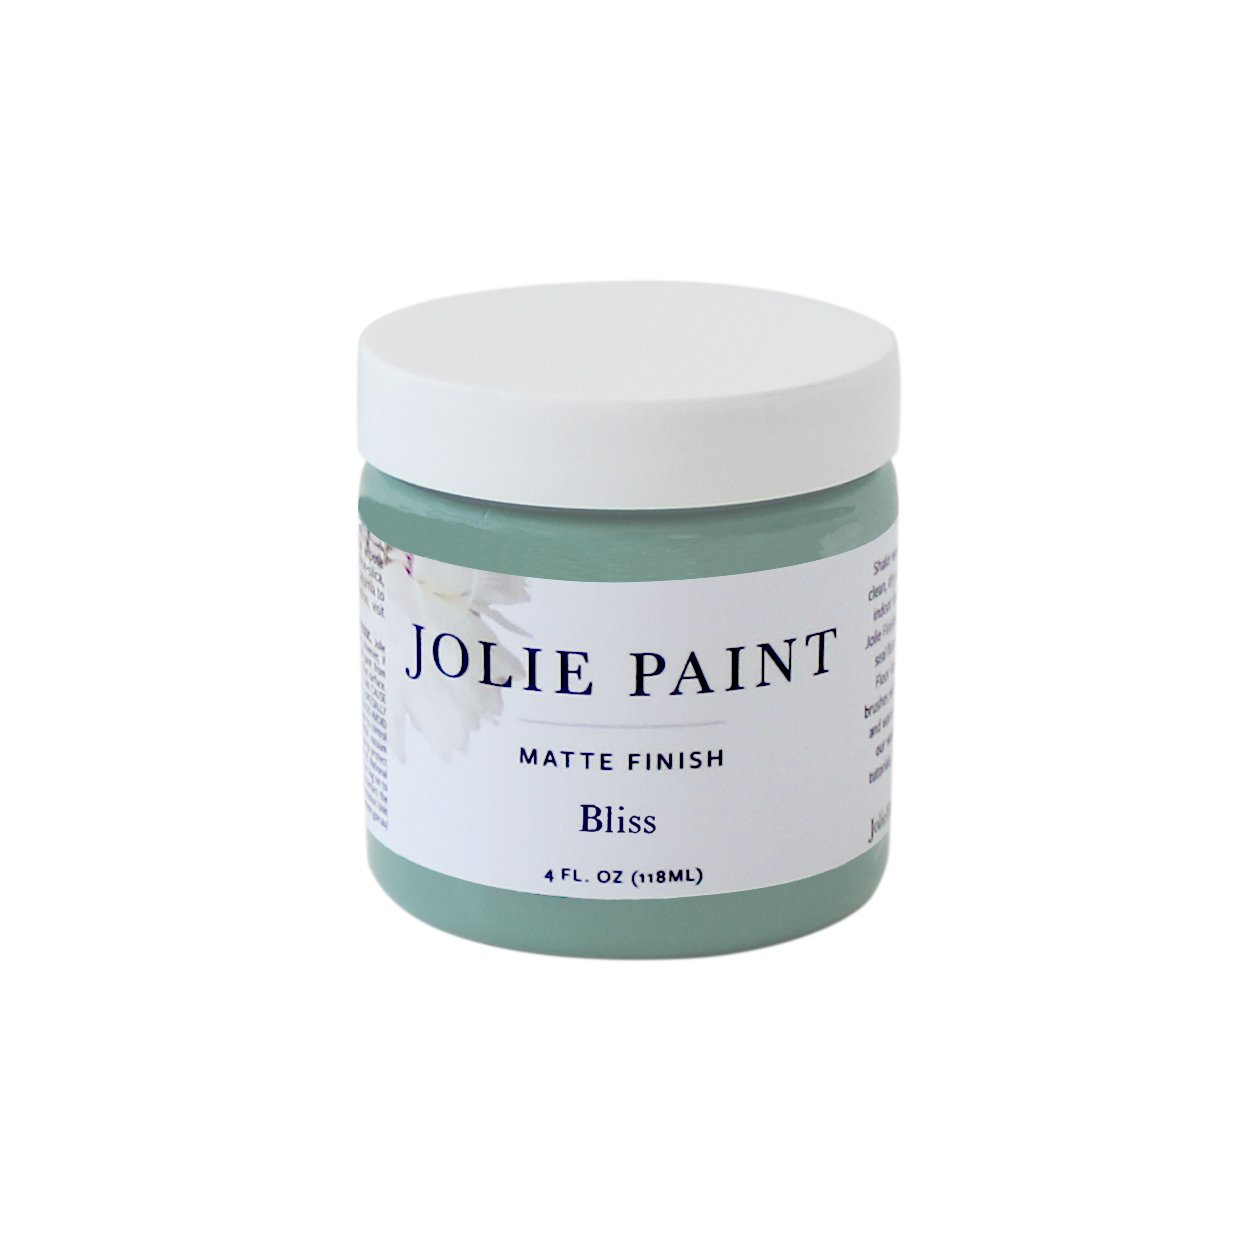 JOLIE PAINT Bliss Sample Size 118ml